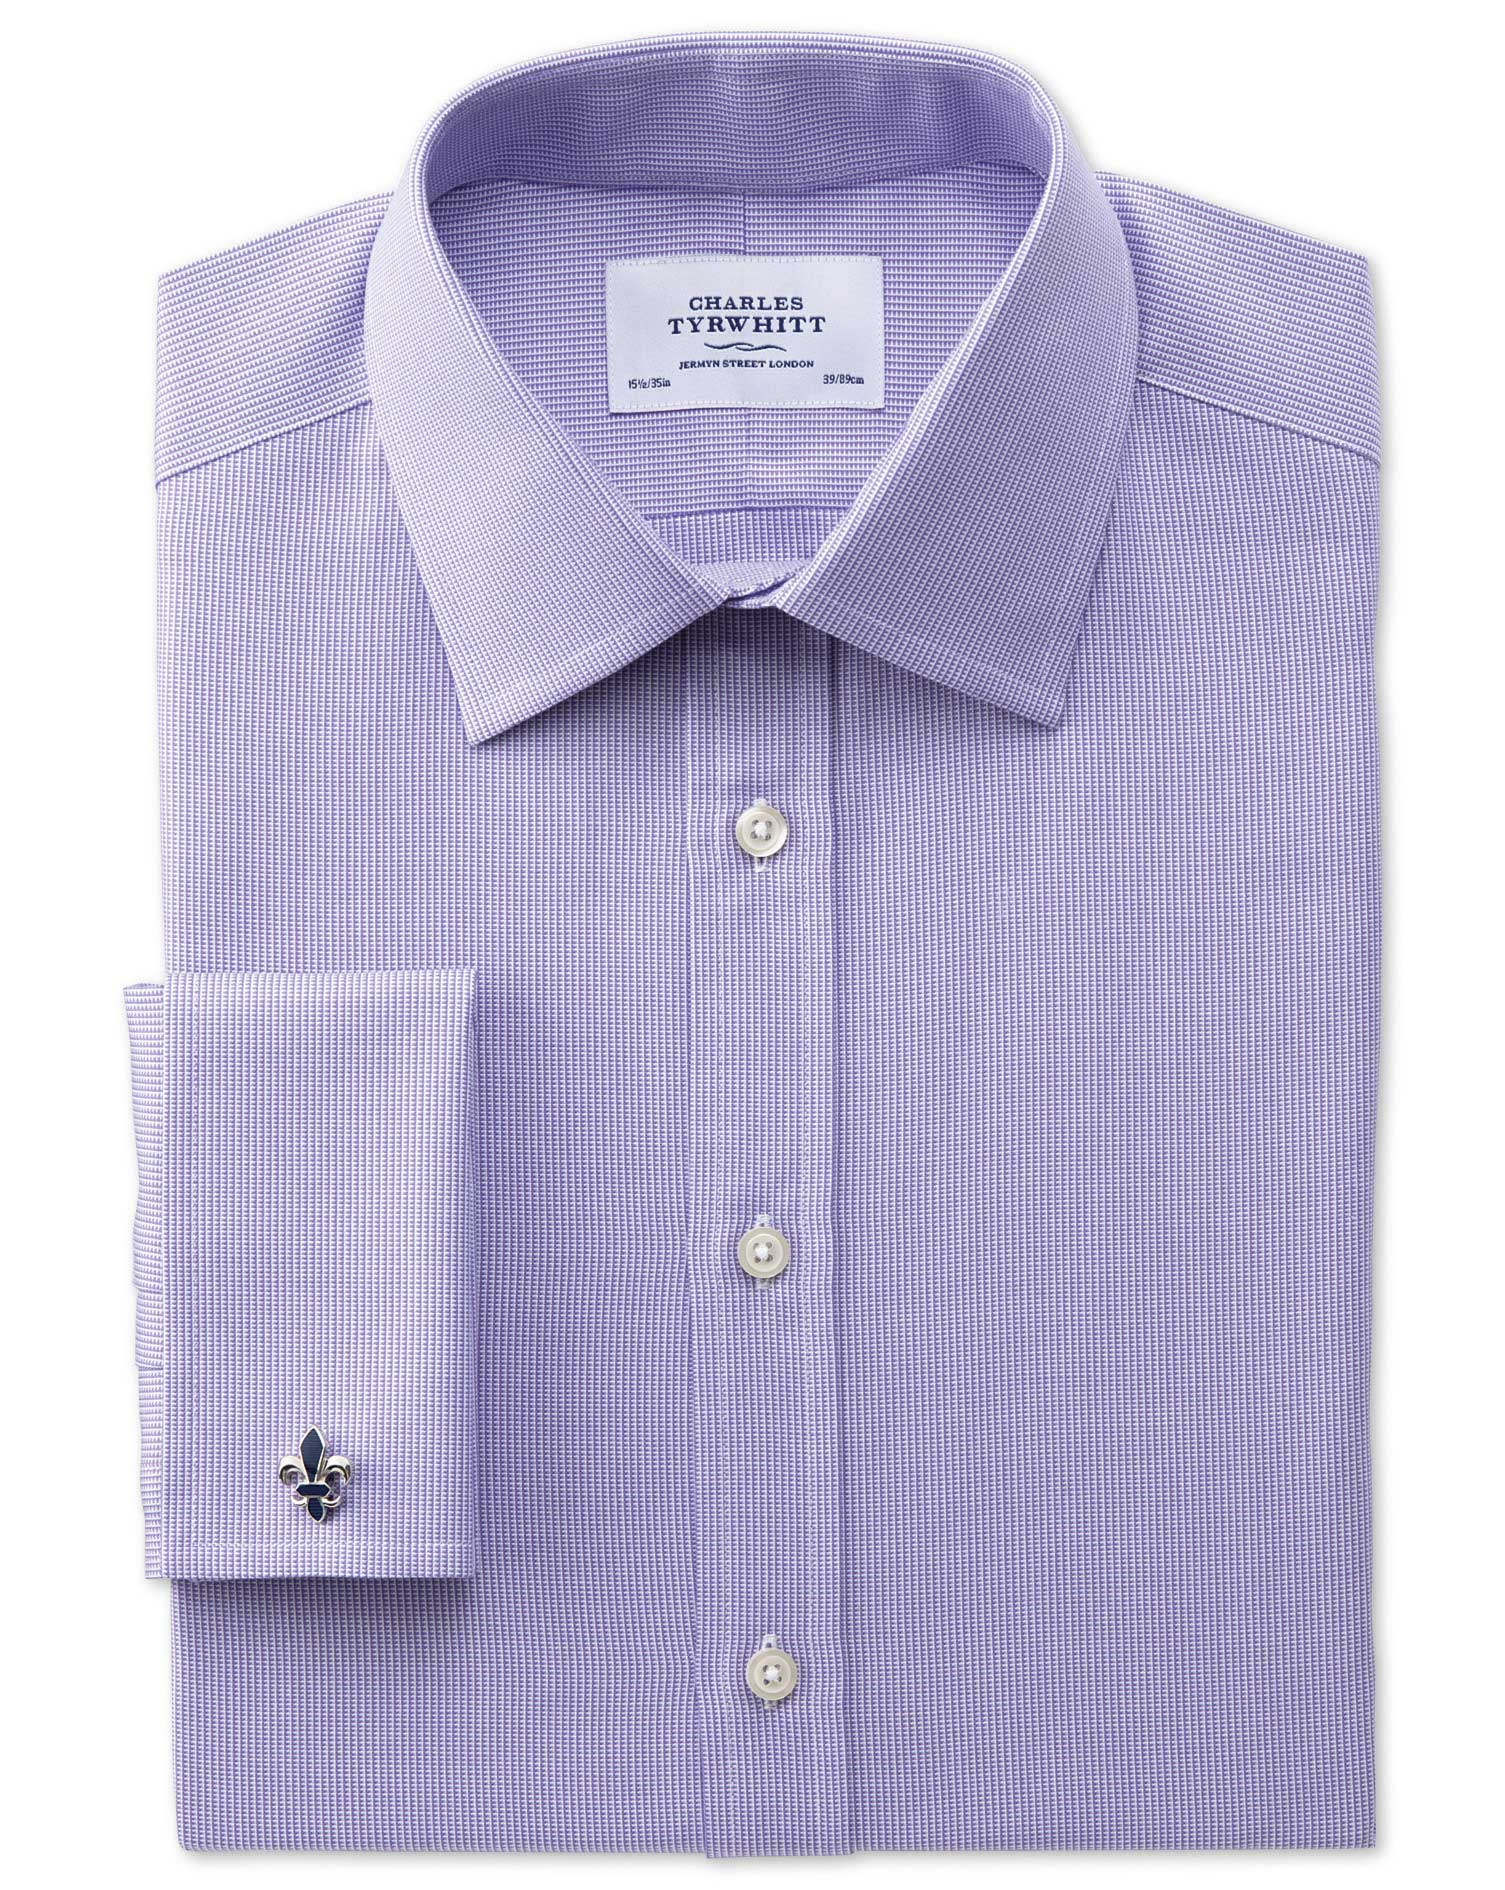 Extra Slim Fit Oxford Lilac Cotton Formal Shirt Double Cuff Size 15.5/36 by Charles Tyrwhitt